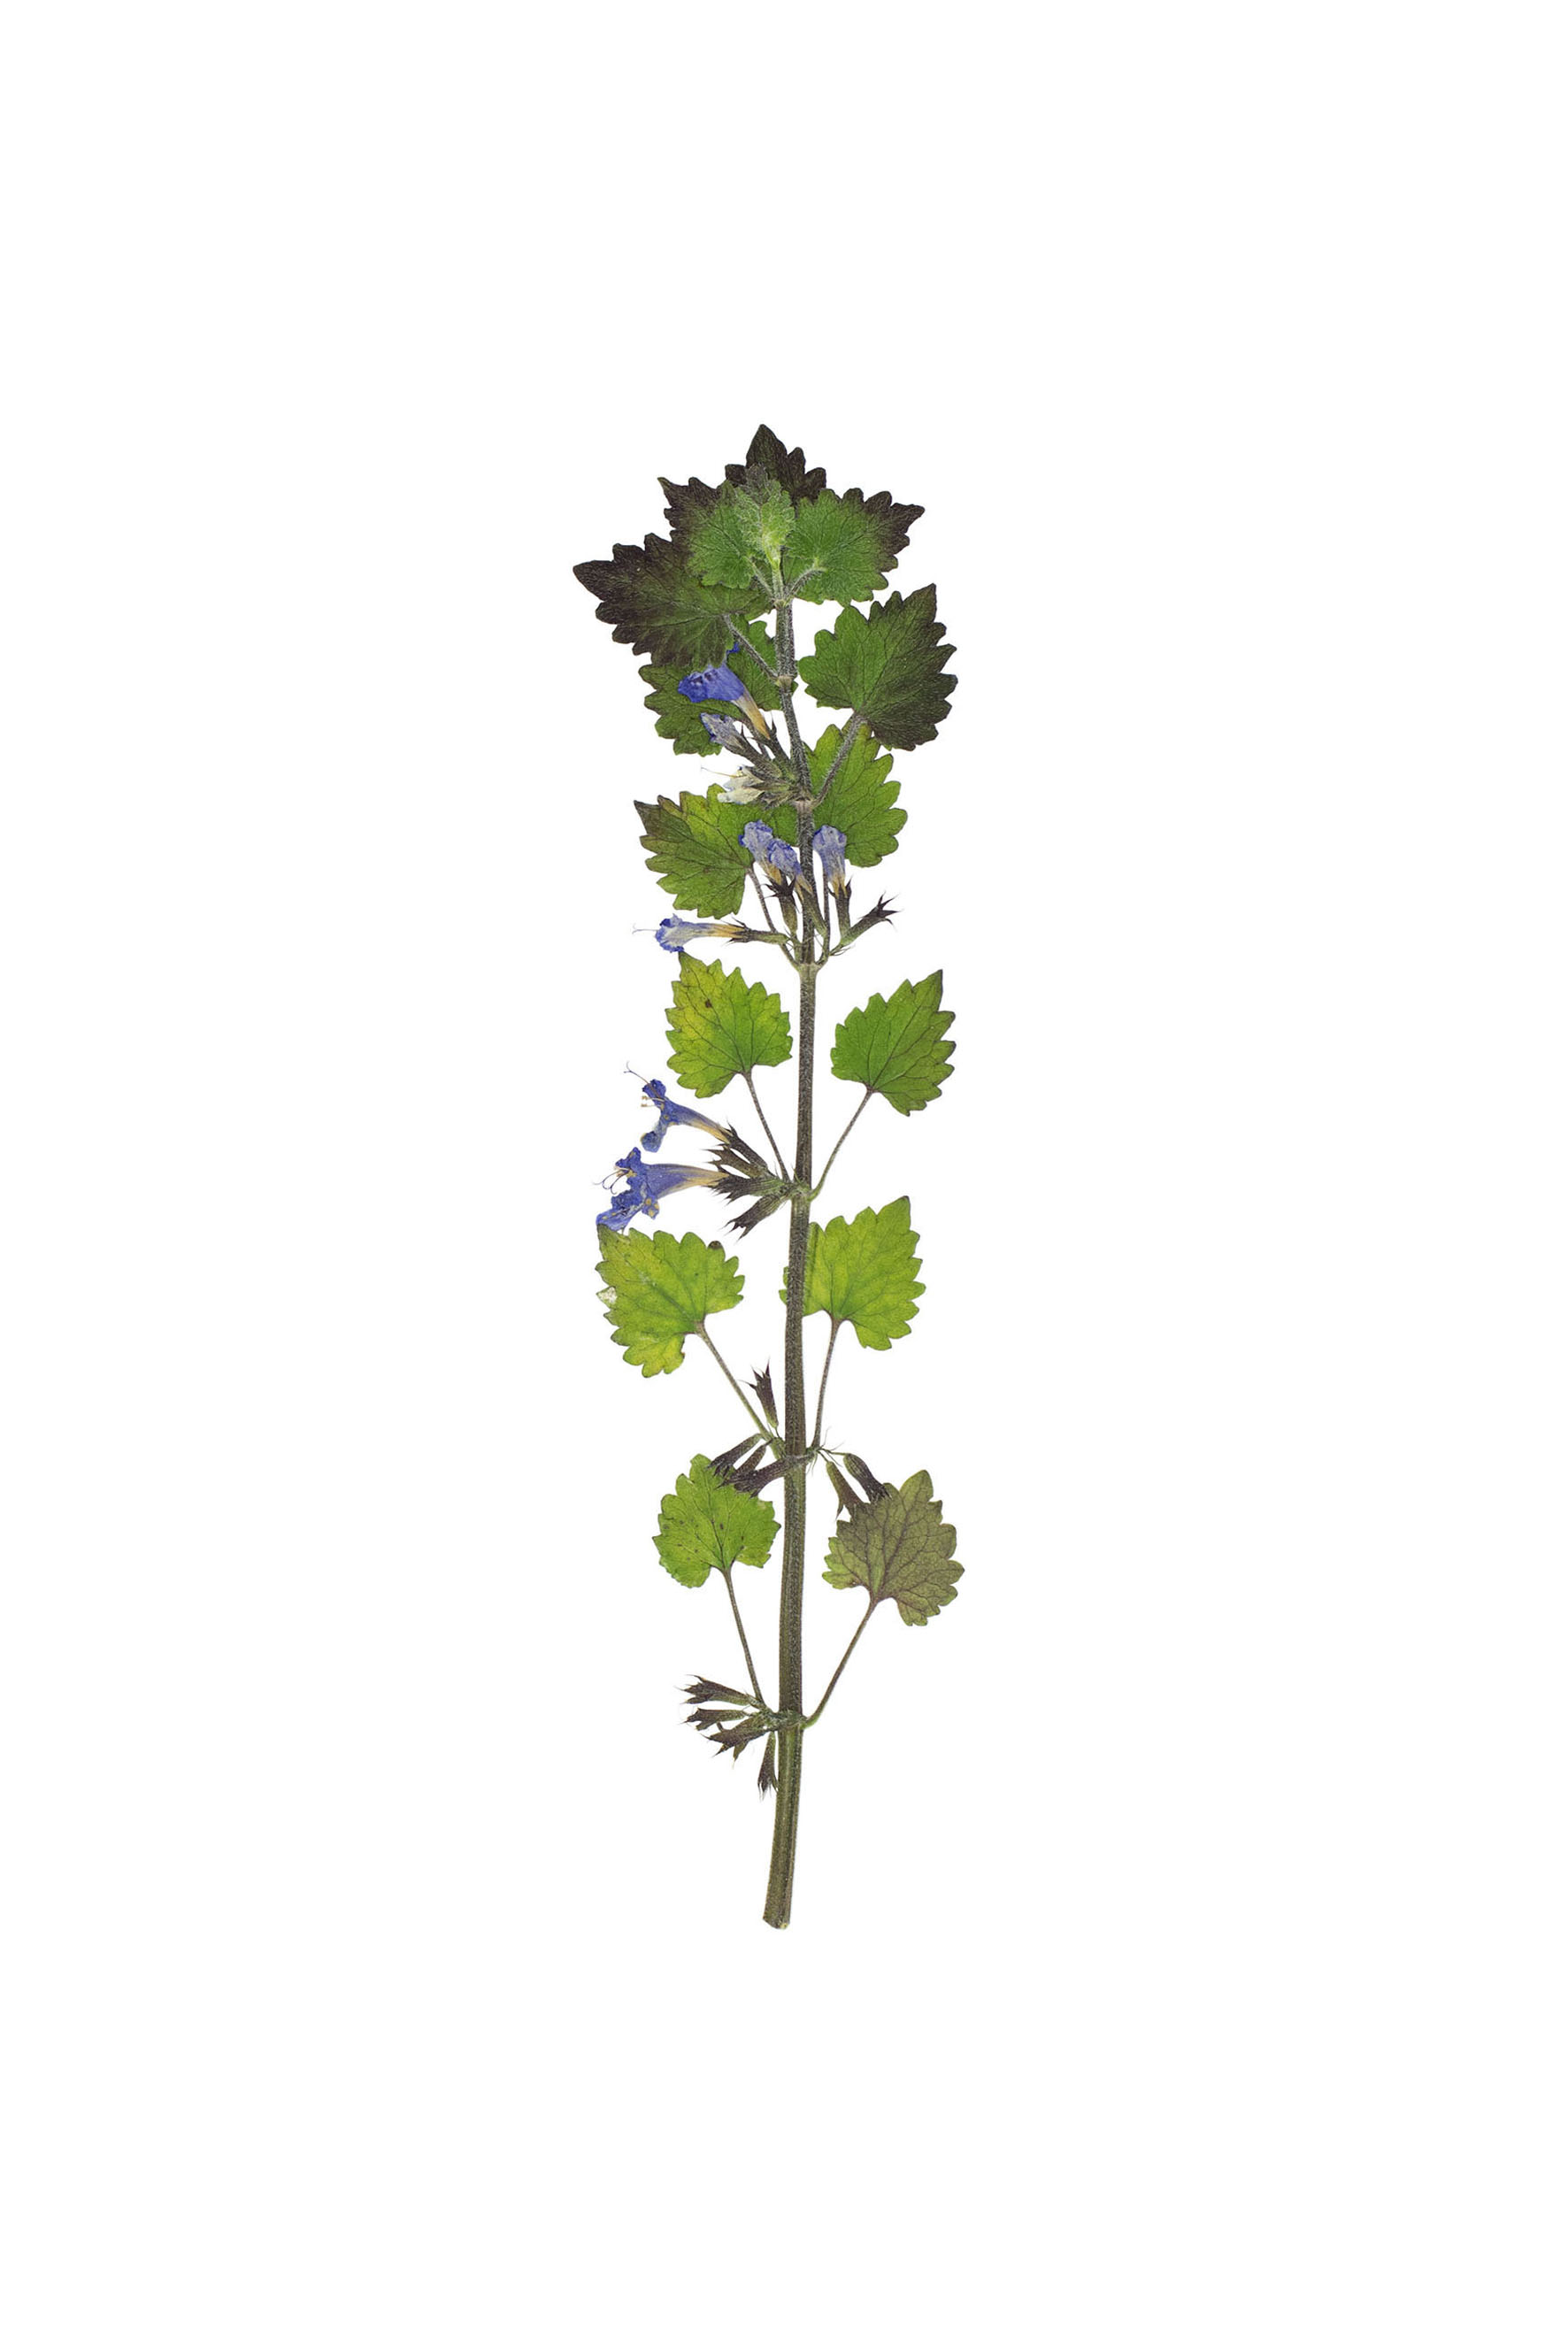 New! Glechoma hederacea / Ground Ivy